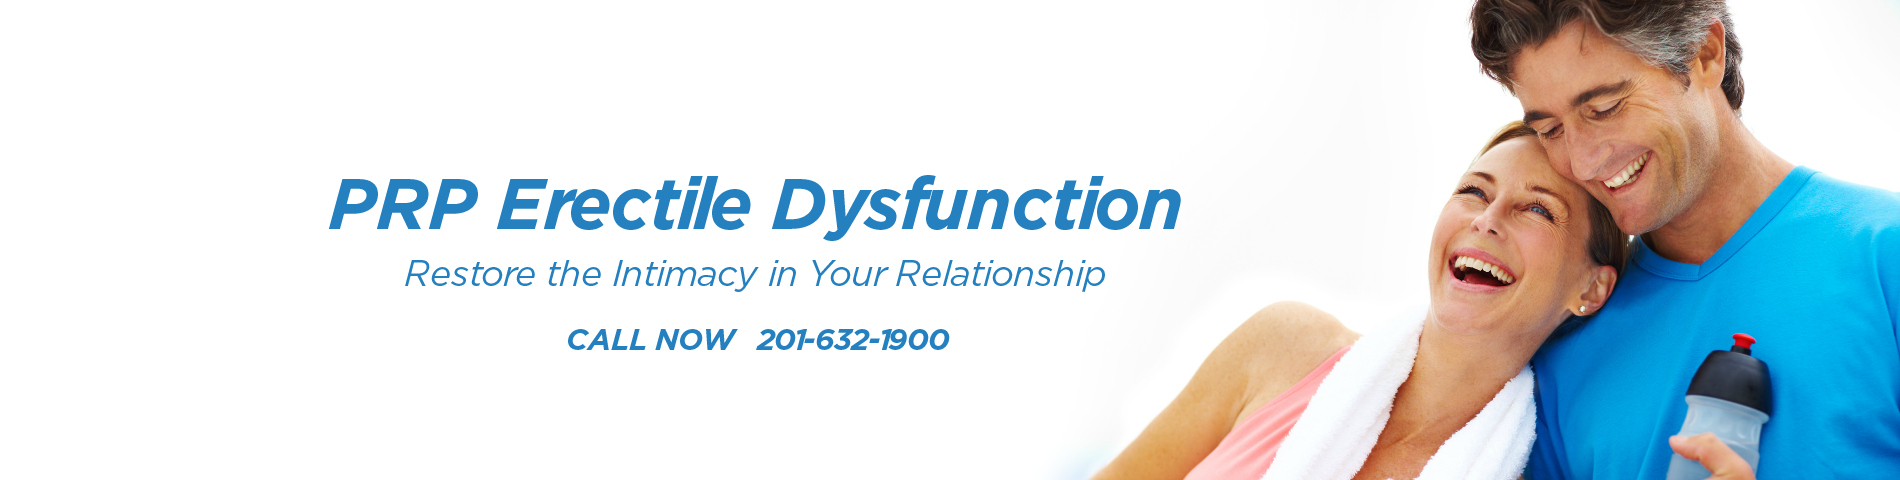 PRP Erectile Dysfunction